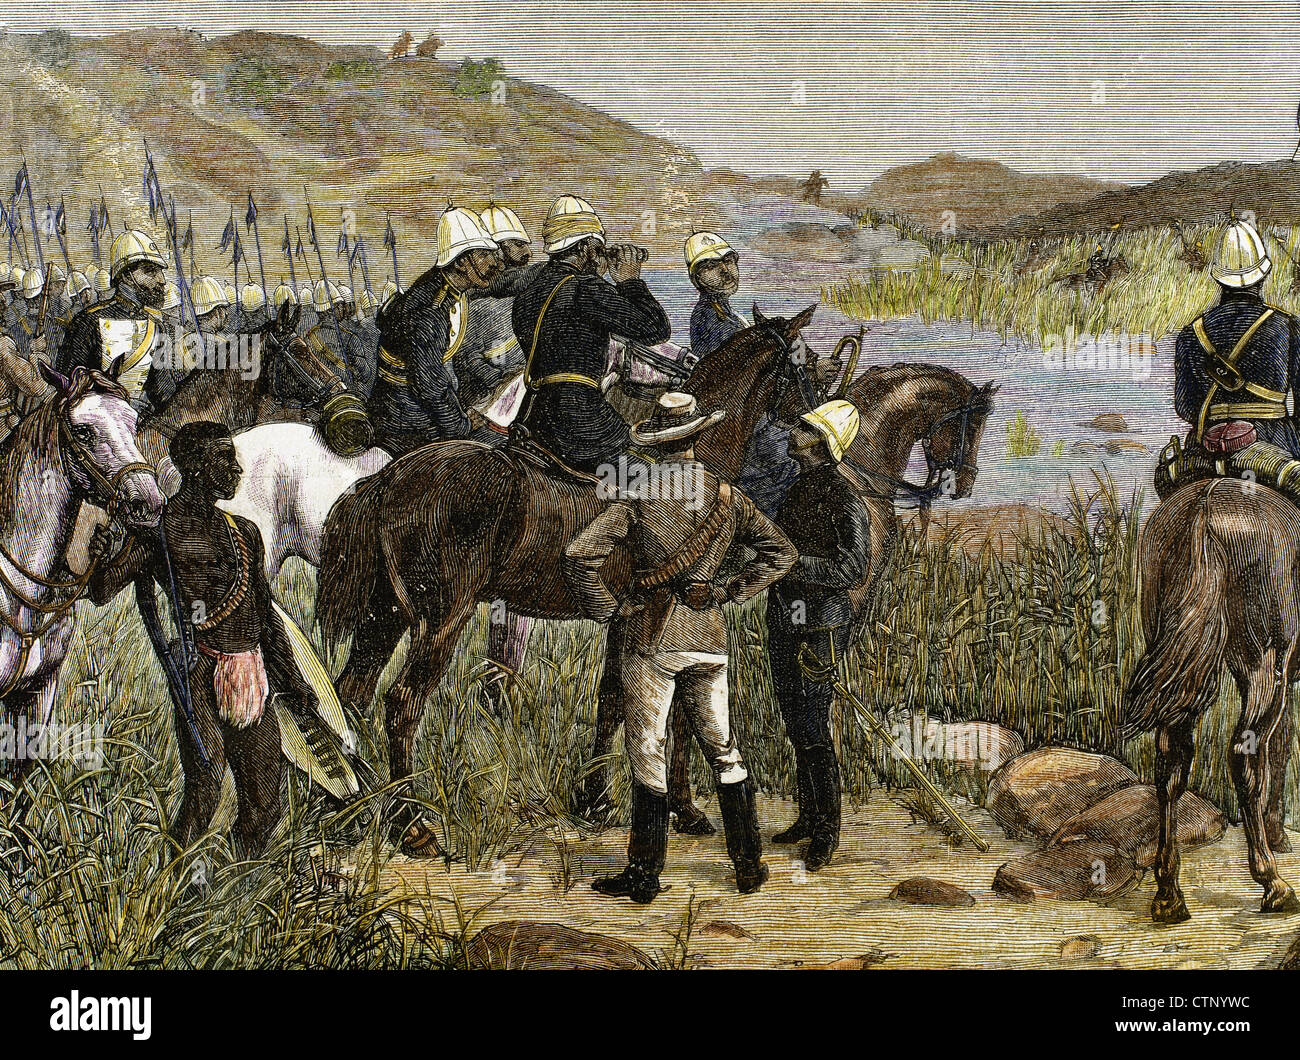 Capture of Cetshwayo. Major Marter sights the Kraal, last refuge of the ex-king of the Zulus. Colored engraving. - Stock Image